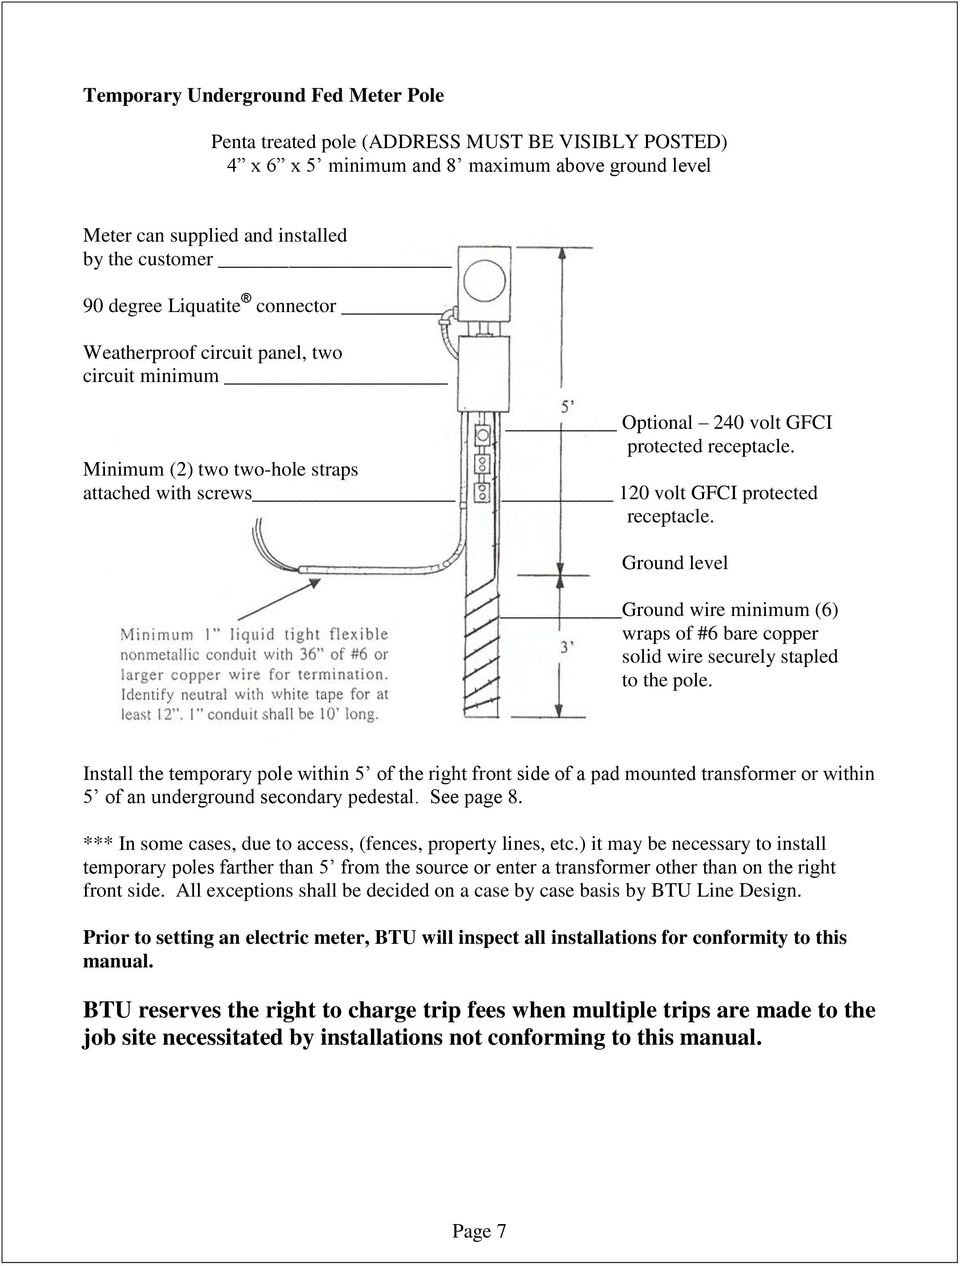 medium resolution of 120 volt gfci protected receptacle ground level ground wire minimum 6 wraps of